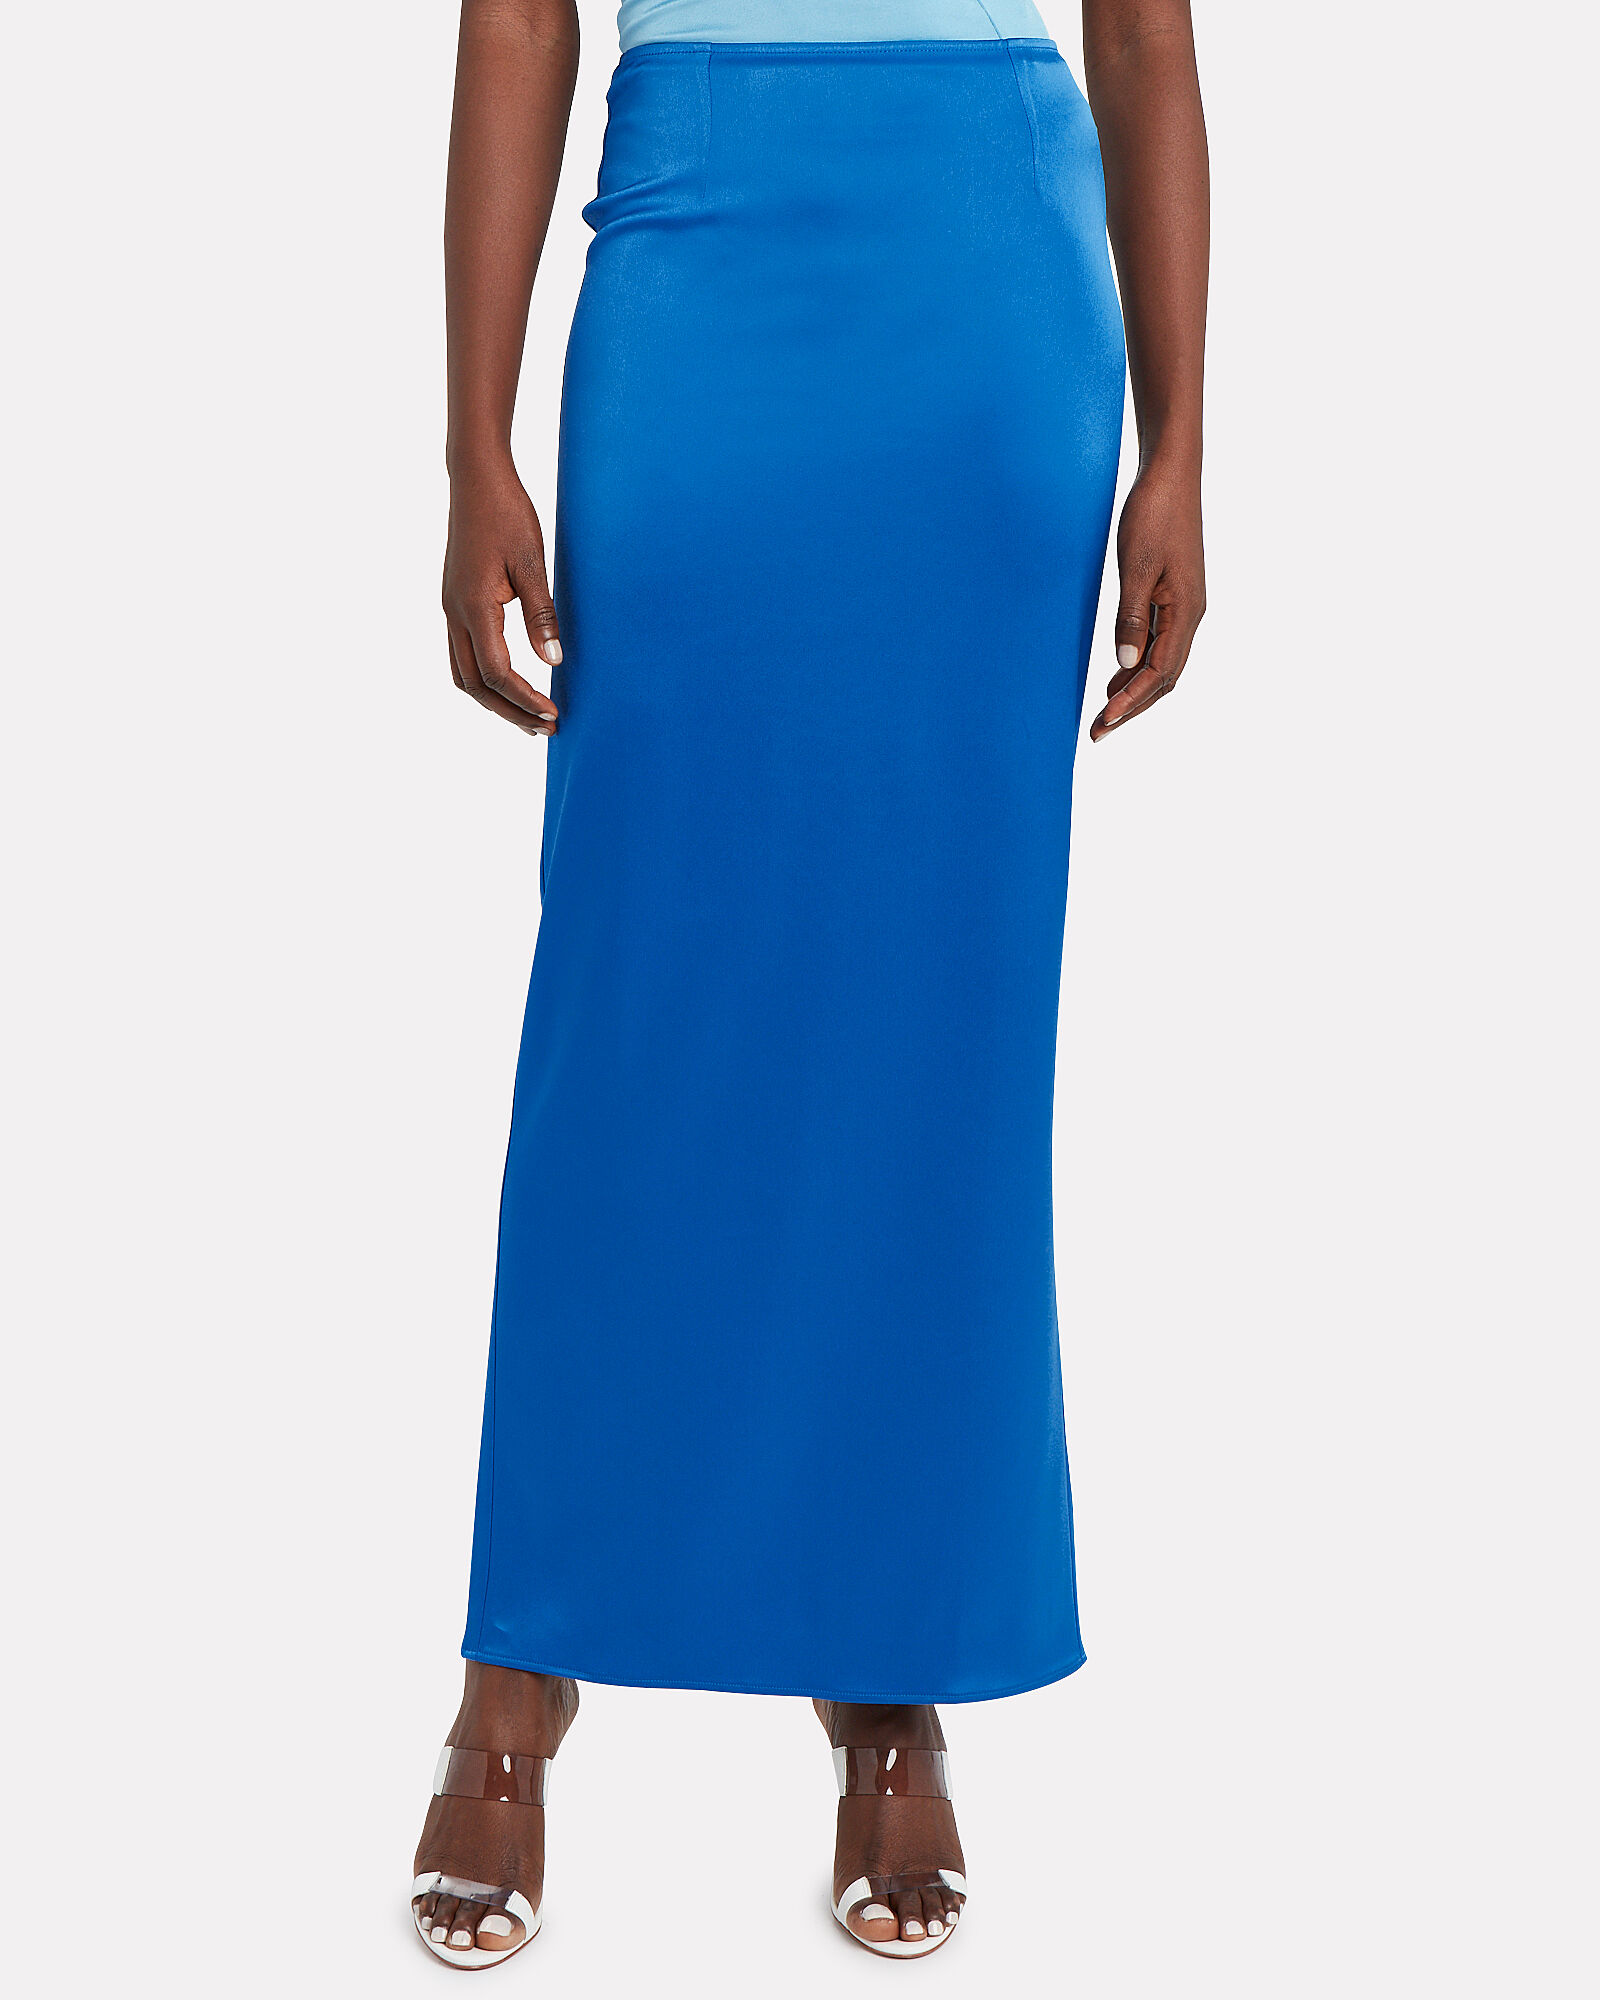 Satin Maxi Skirt, COBALT, hi-res